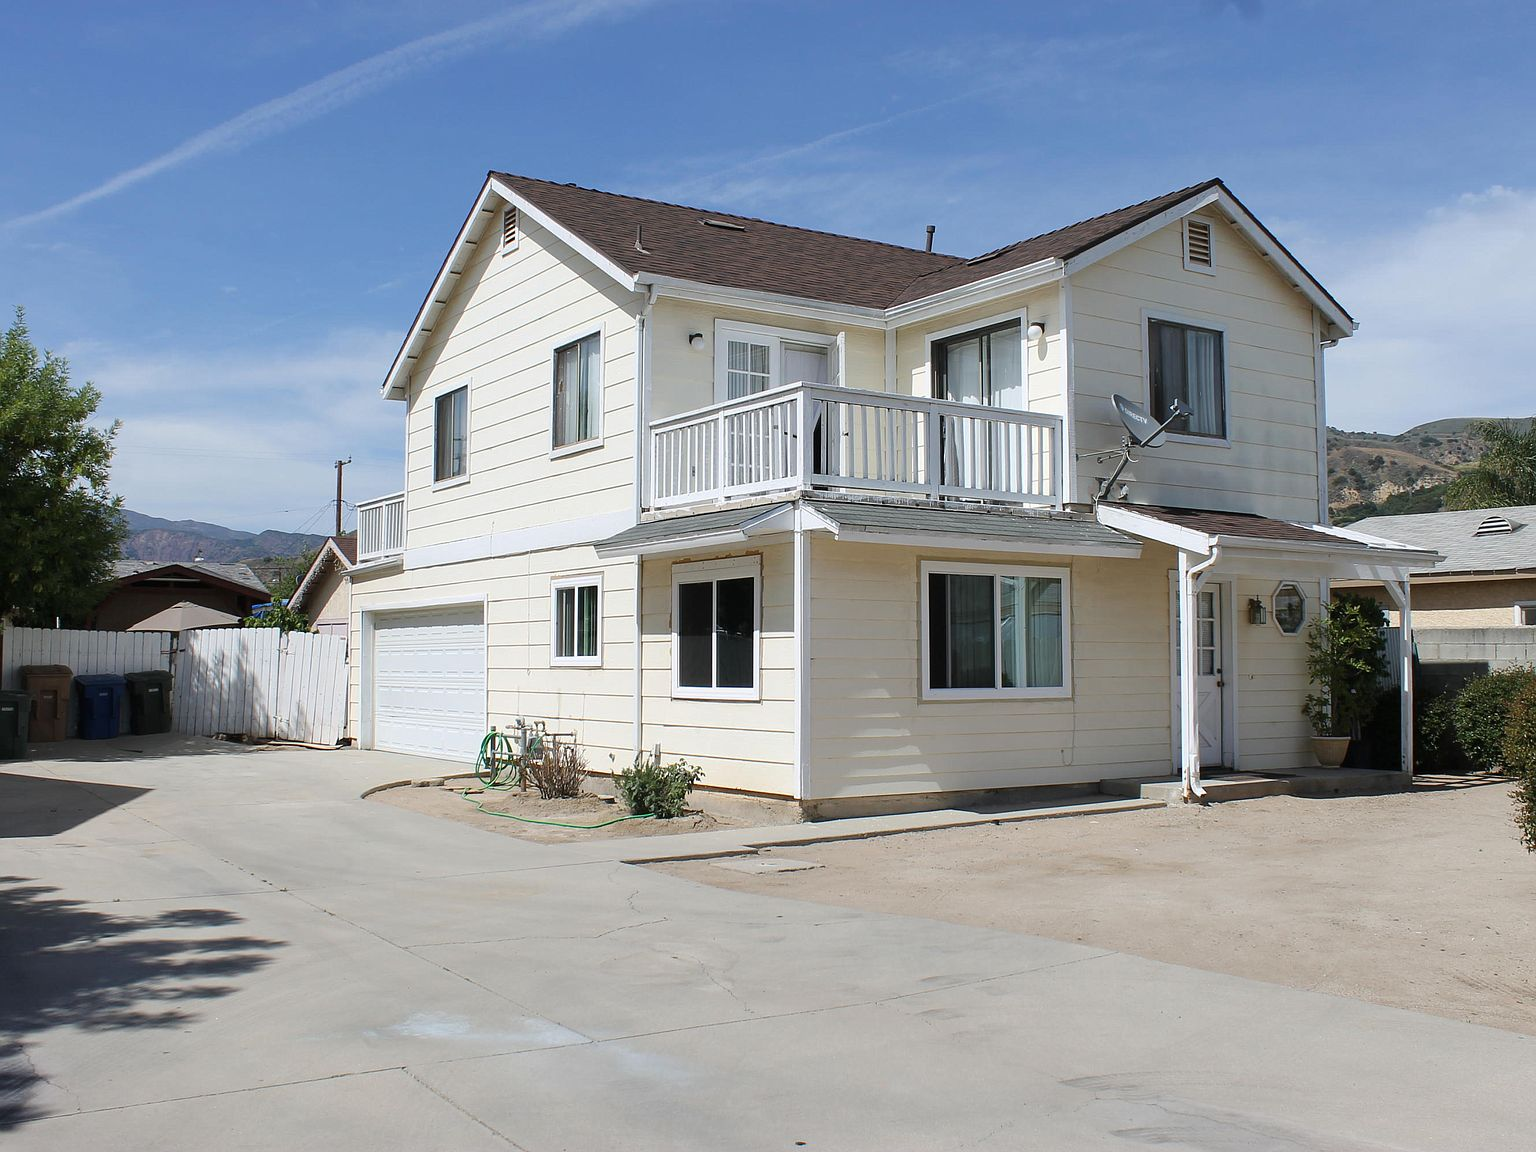 843 3rd St Fillmore Ca 93015 Zillow